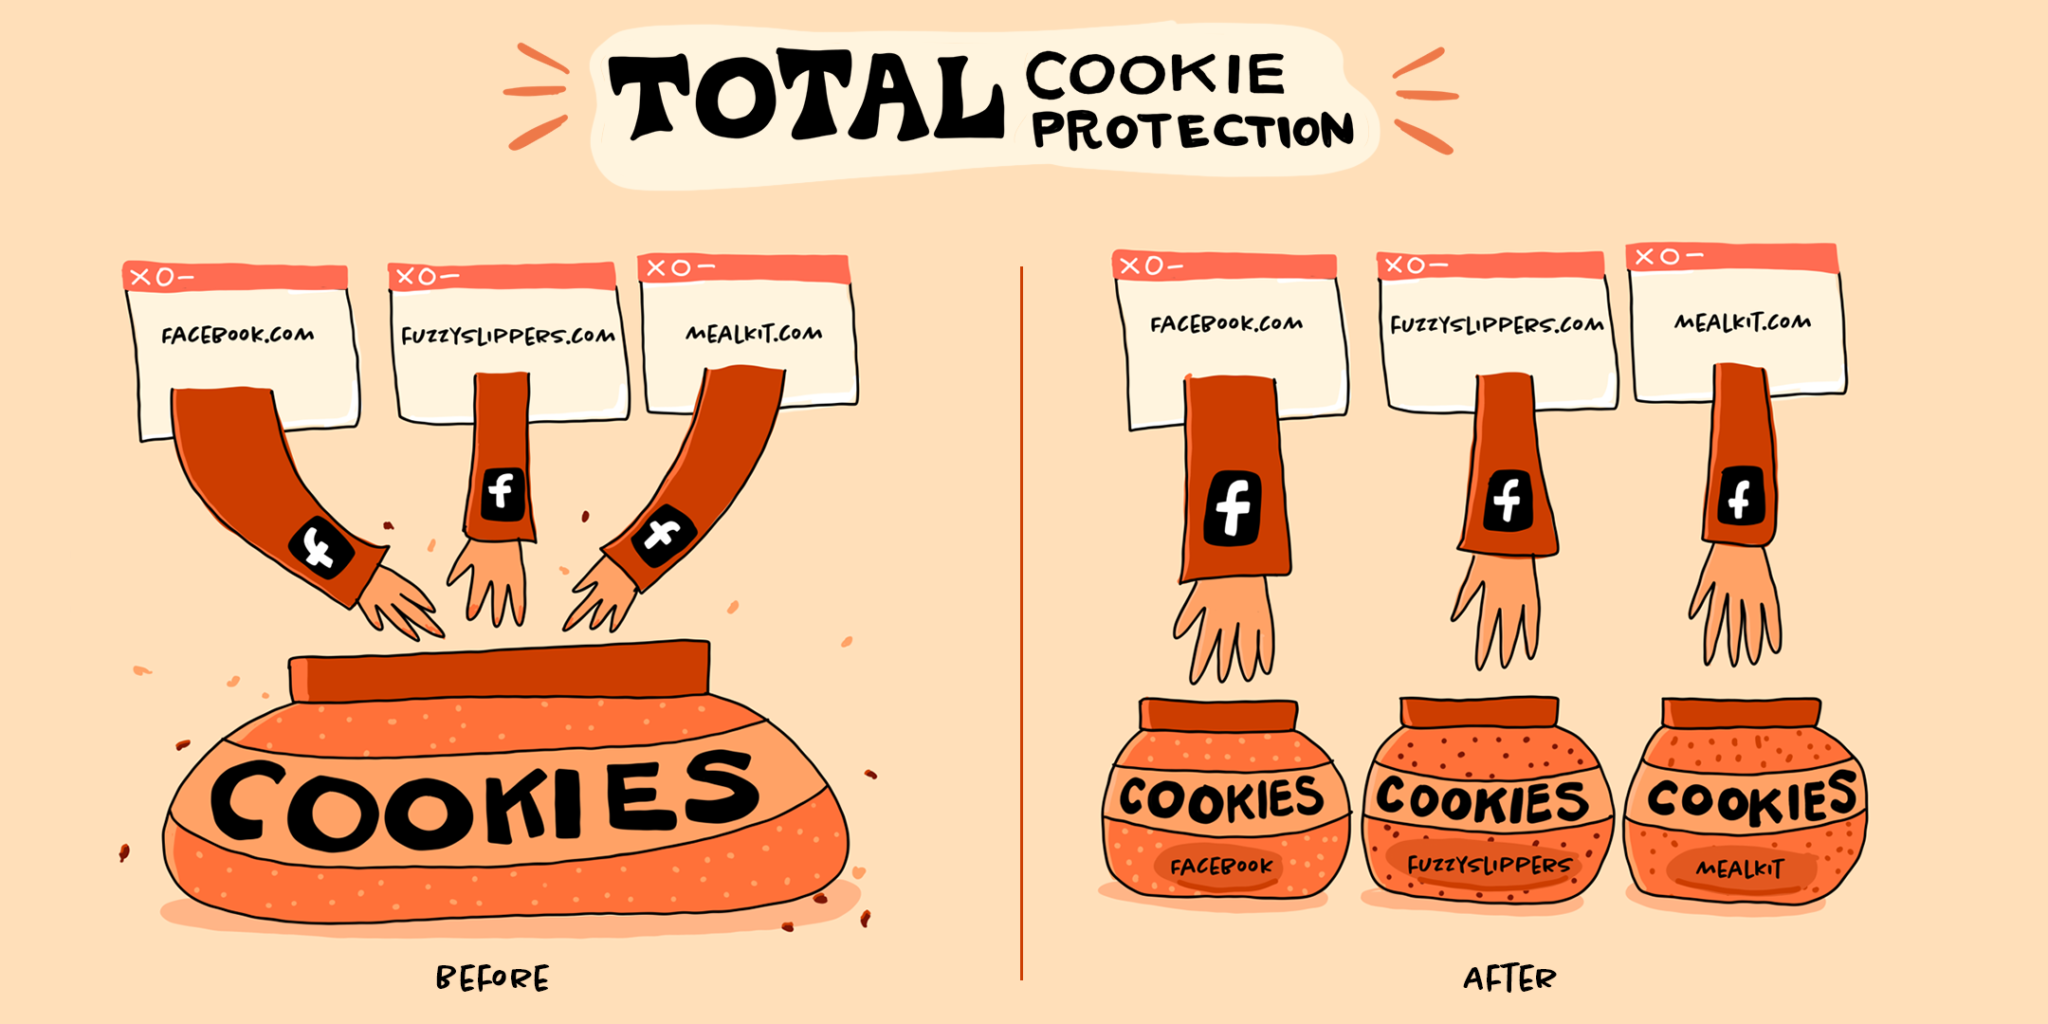 Cookie jar analogy